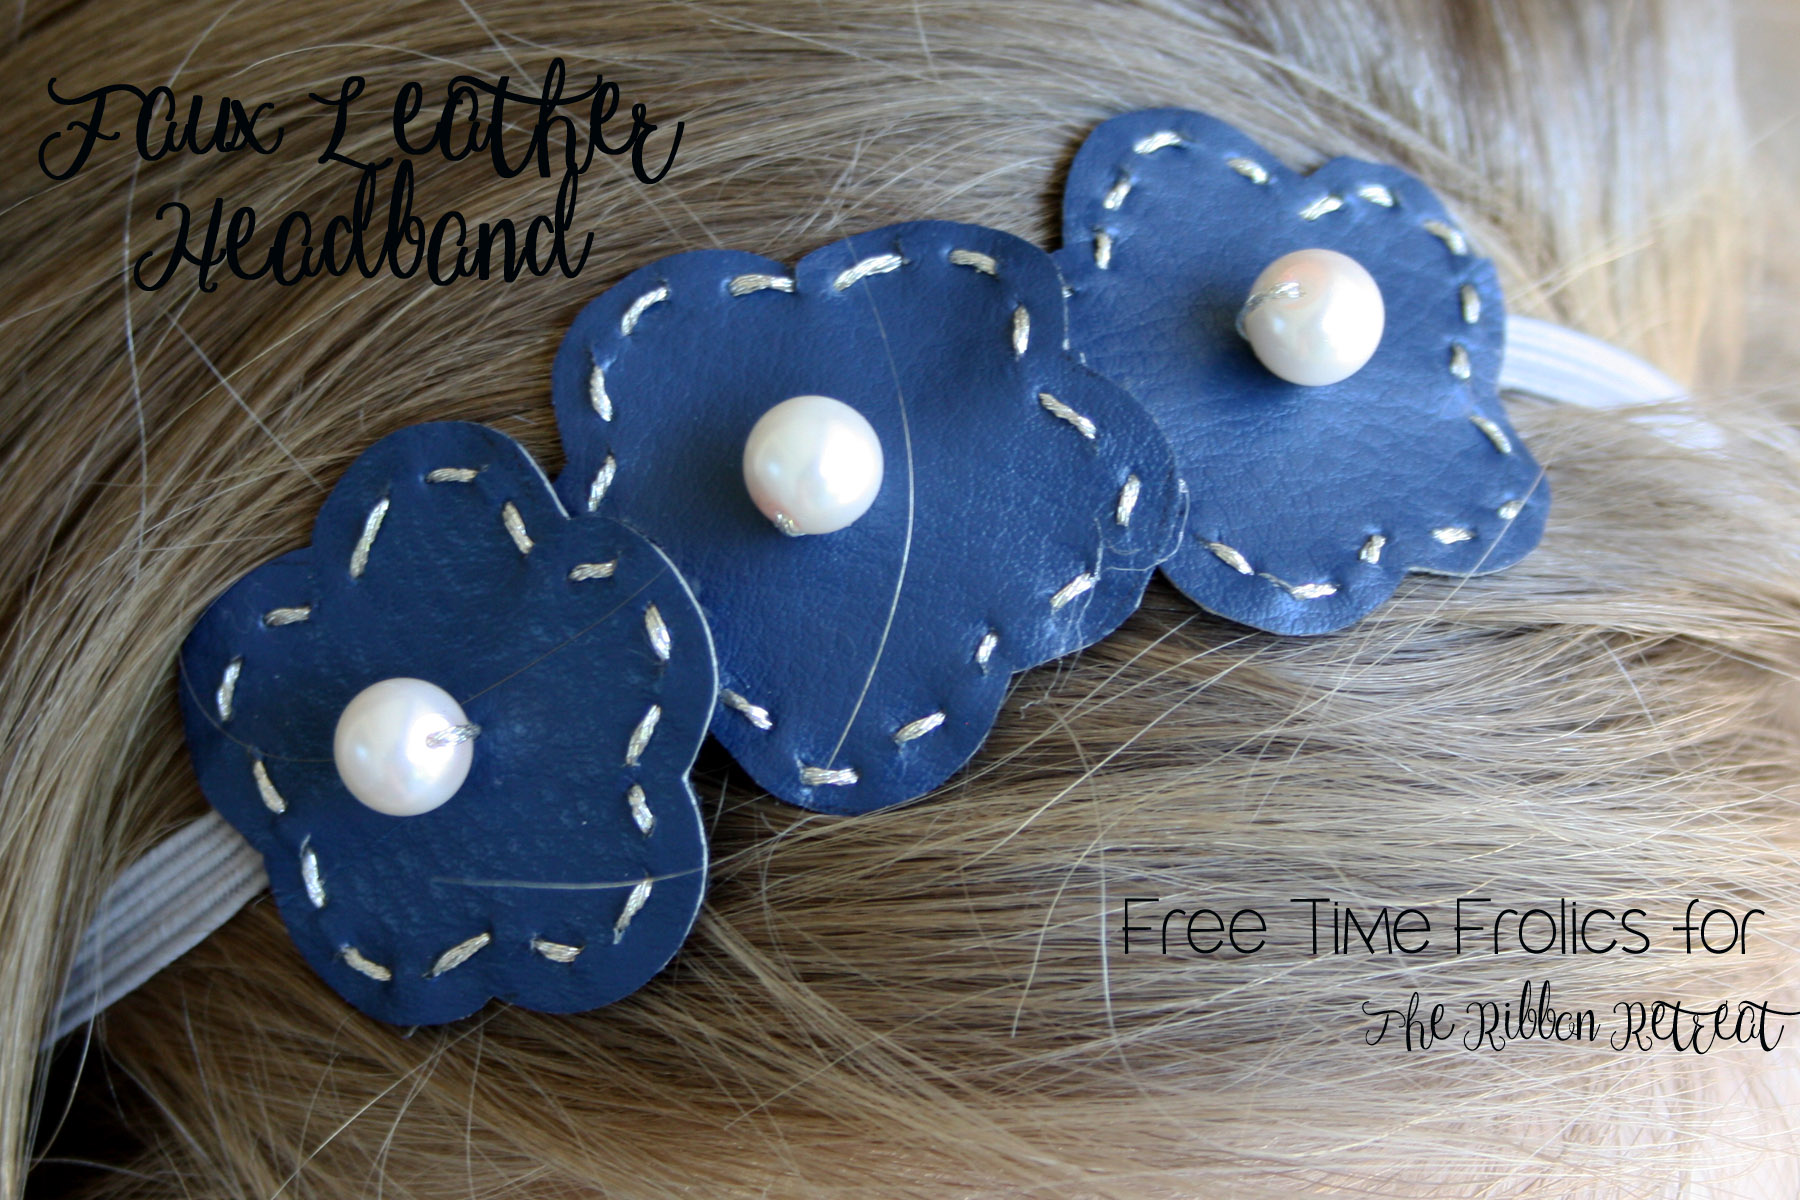 faux leather floral headband www.freetimefrolics.com